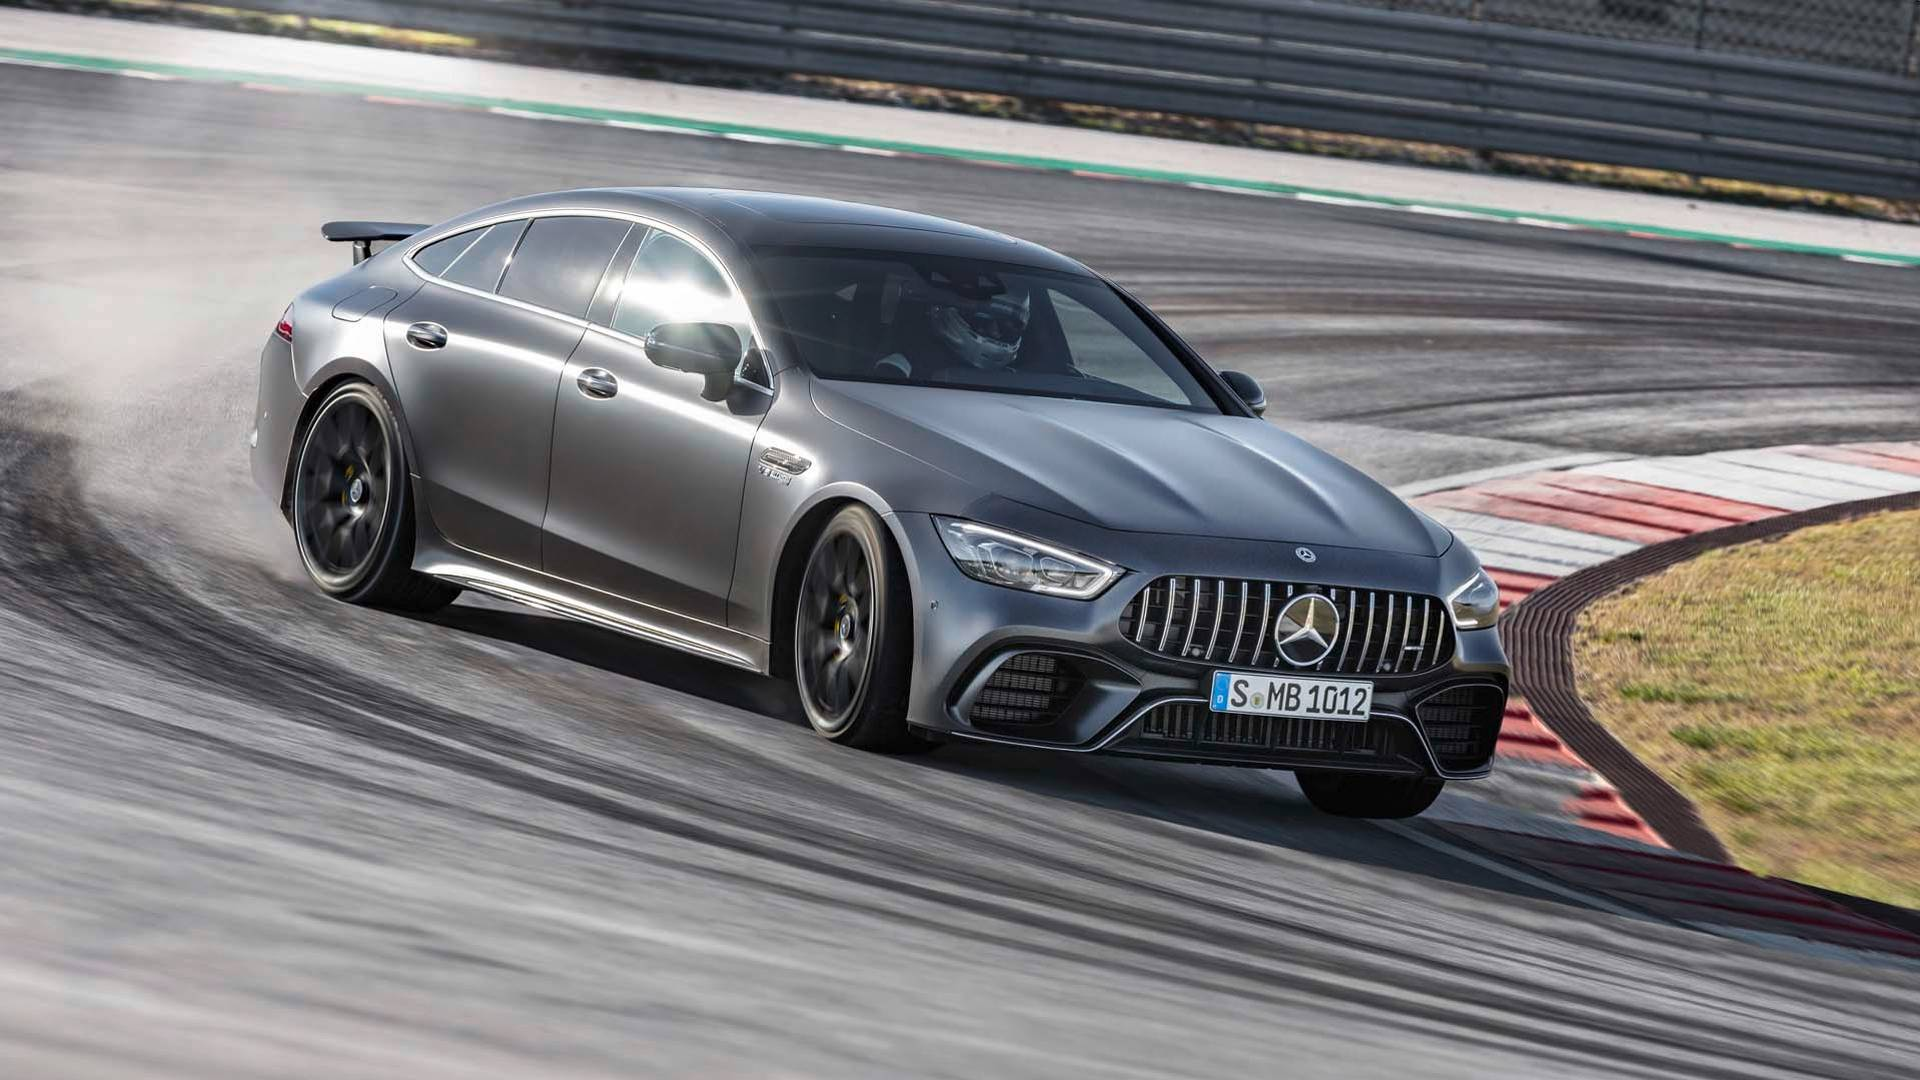 2019-mercedes-amg-gt-4-door-coupe (8).jpg